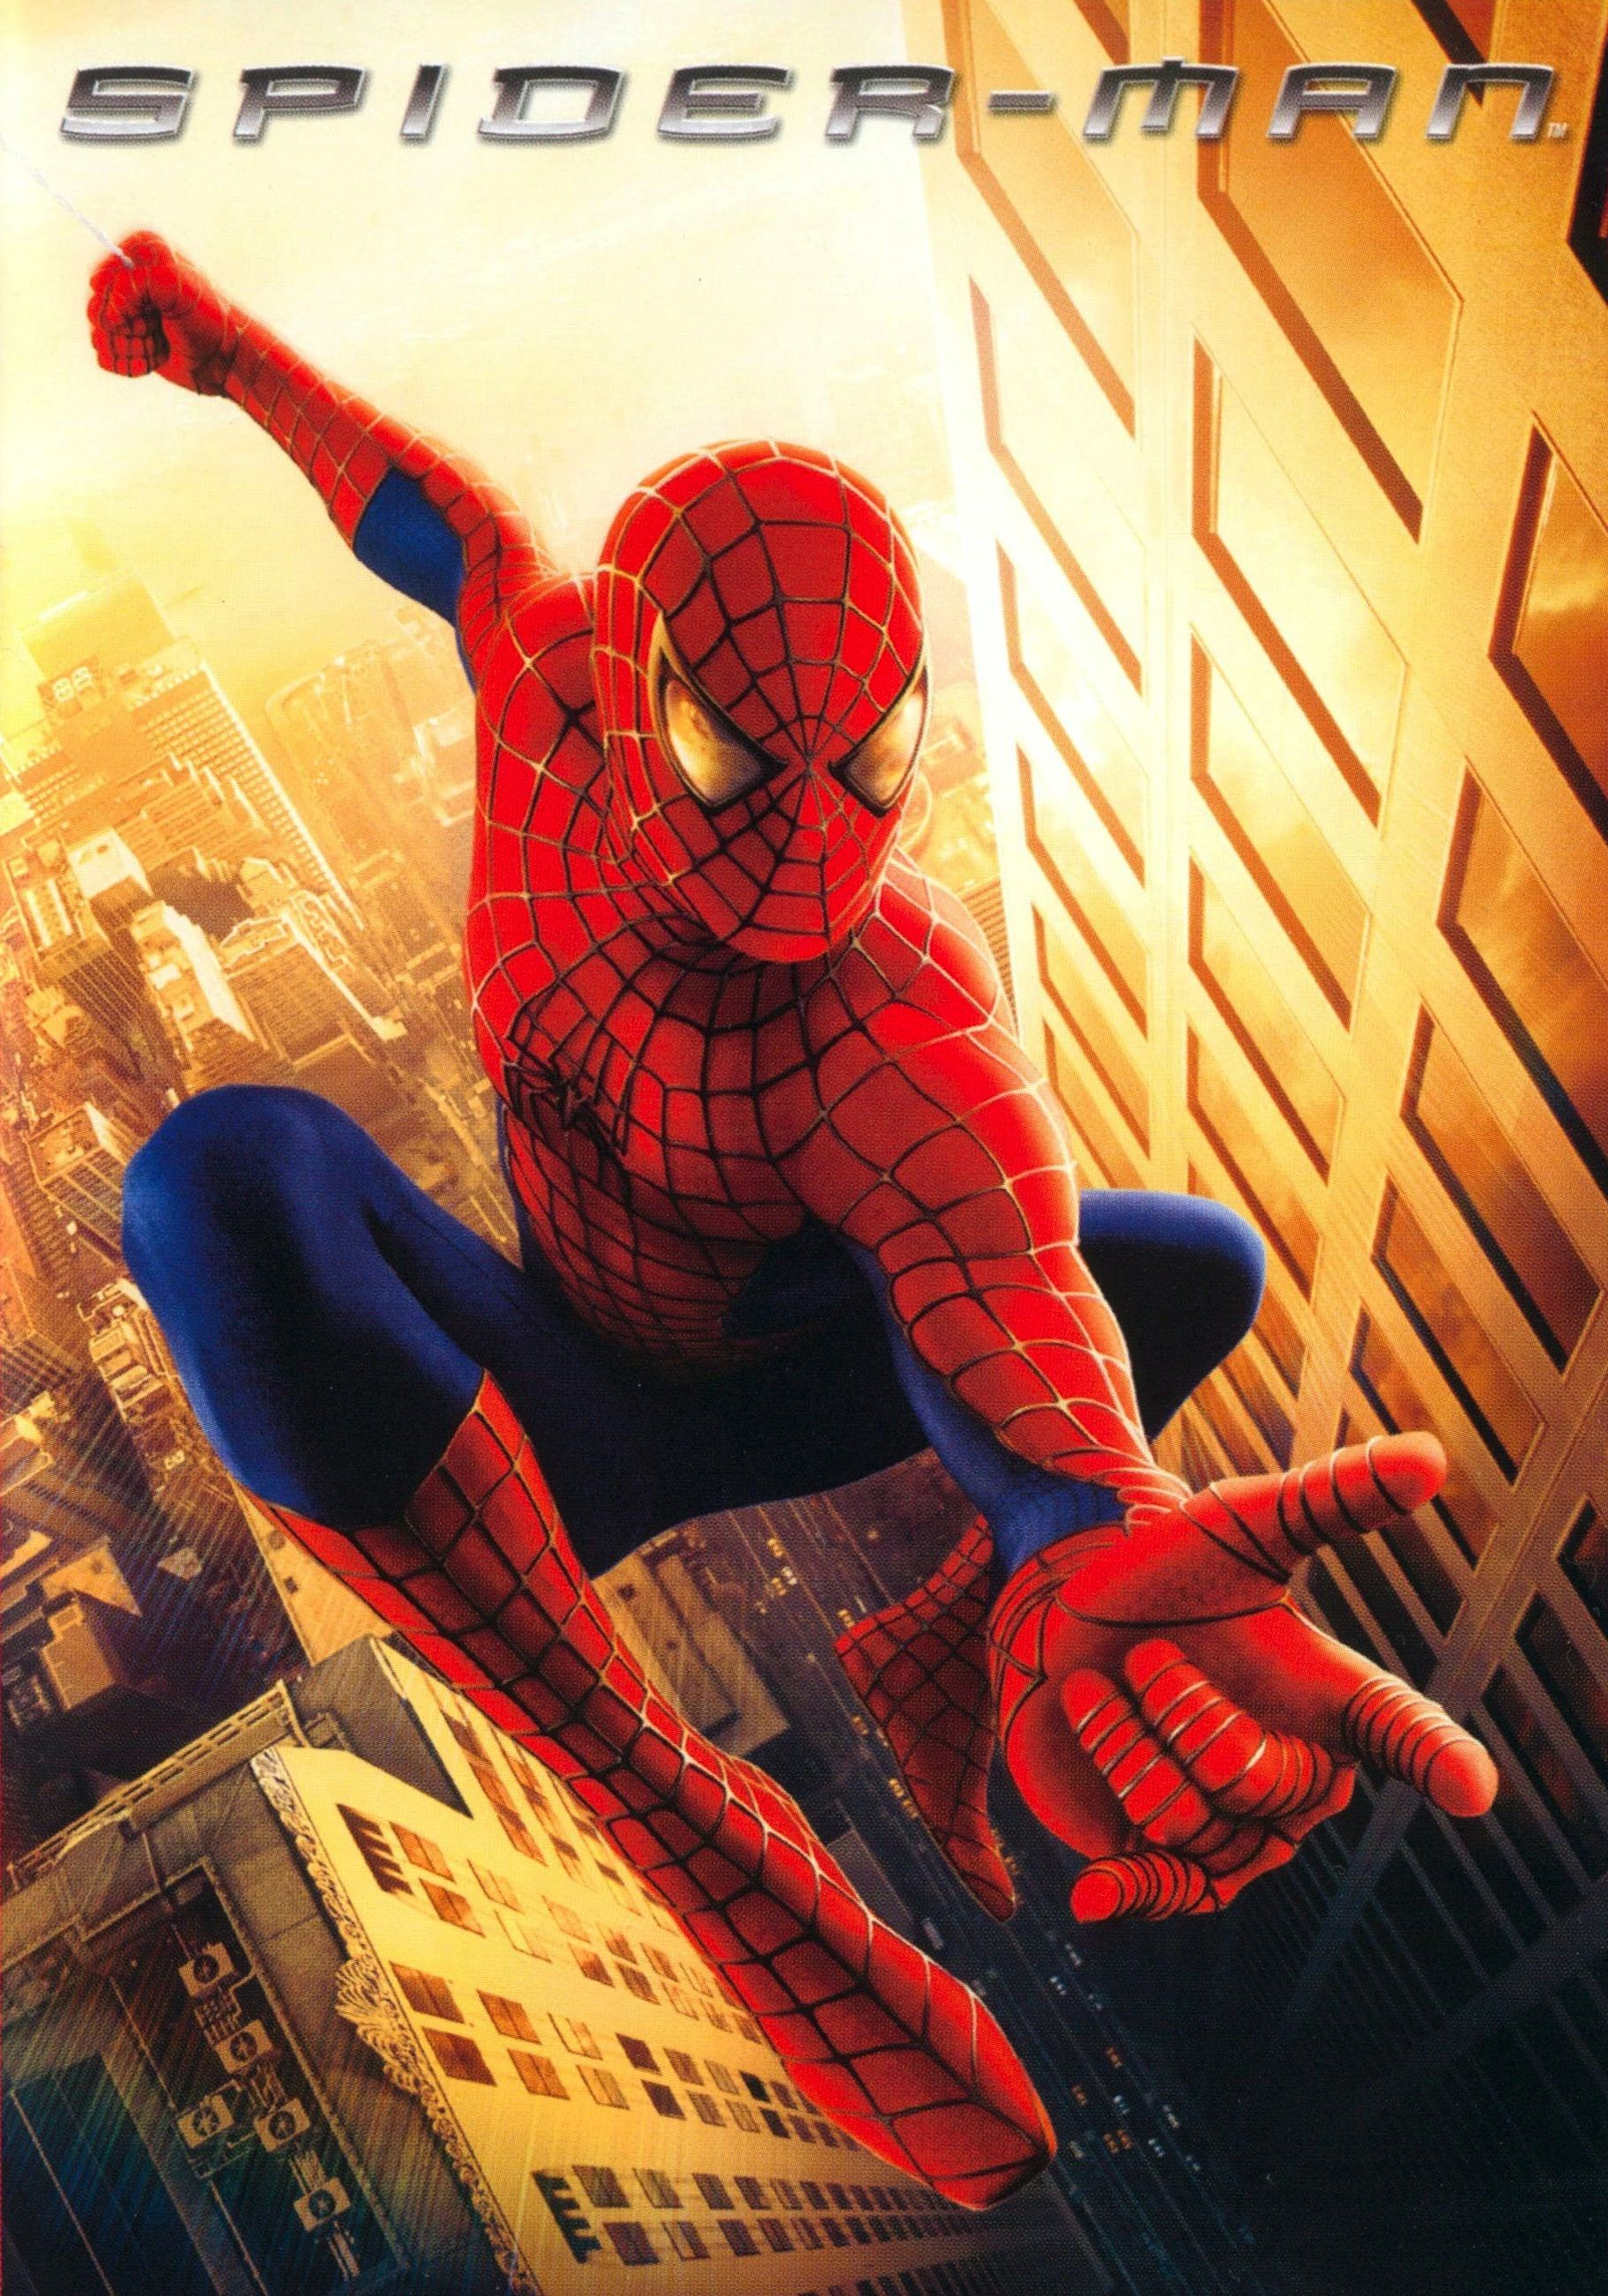 spider man 1 2002 full movie in hindi download